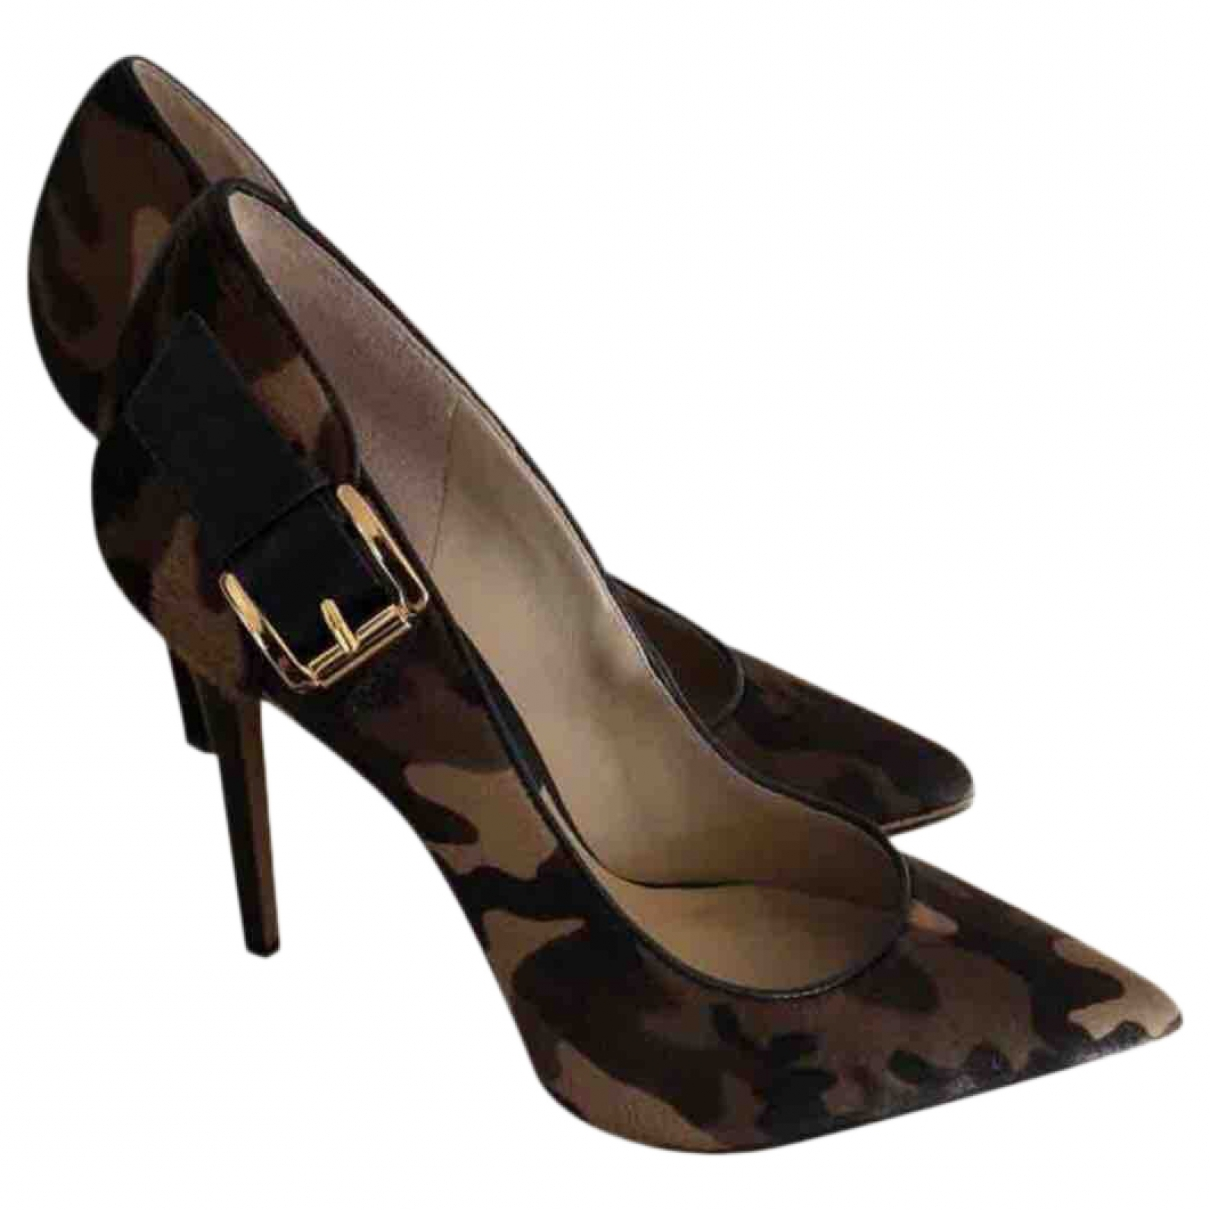 Michael Kors \N Pumps in  Bunt Kalbsleder in Pony-Optik